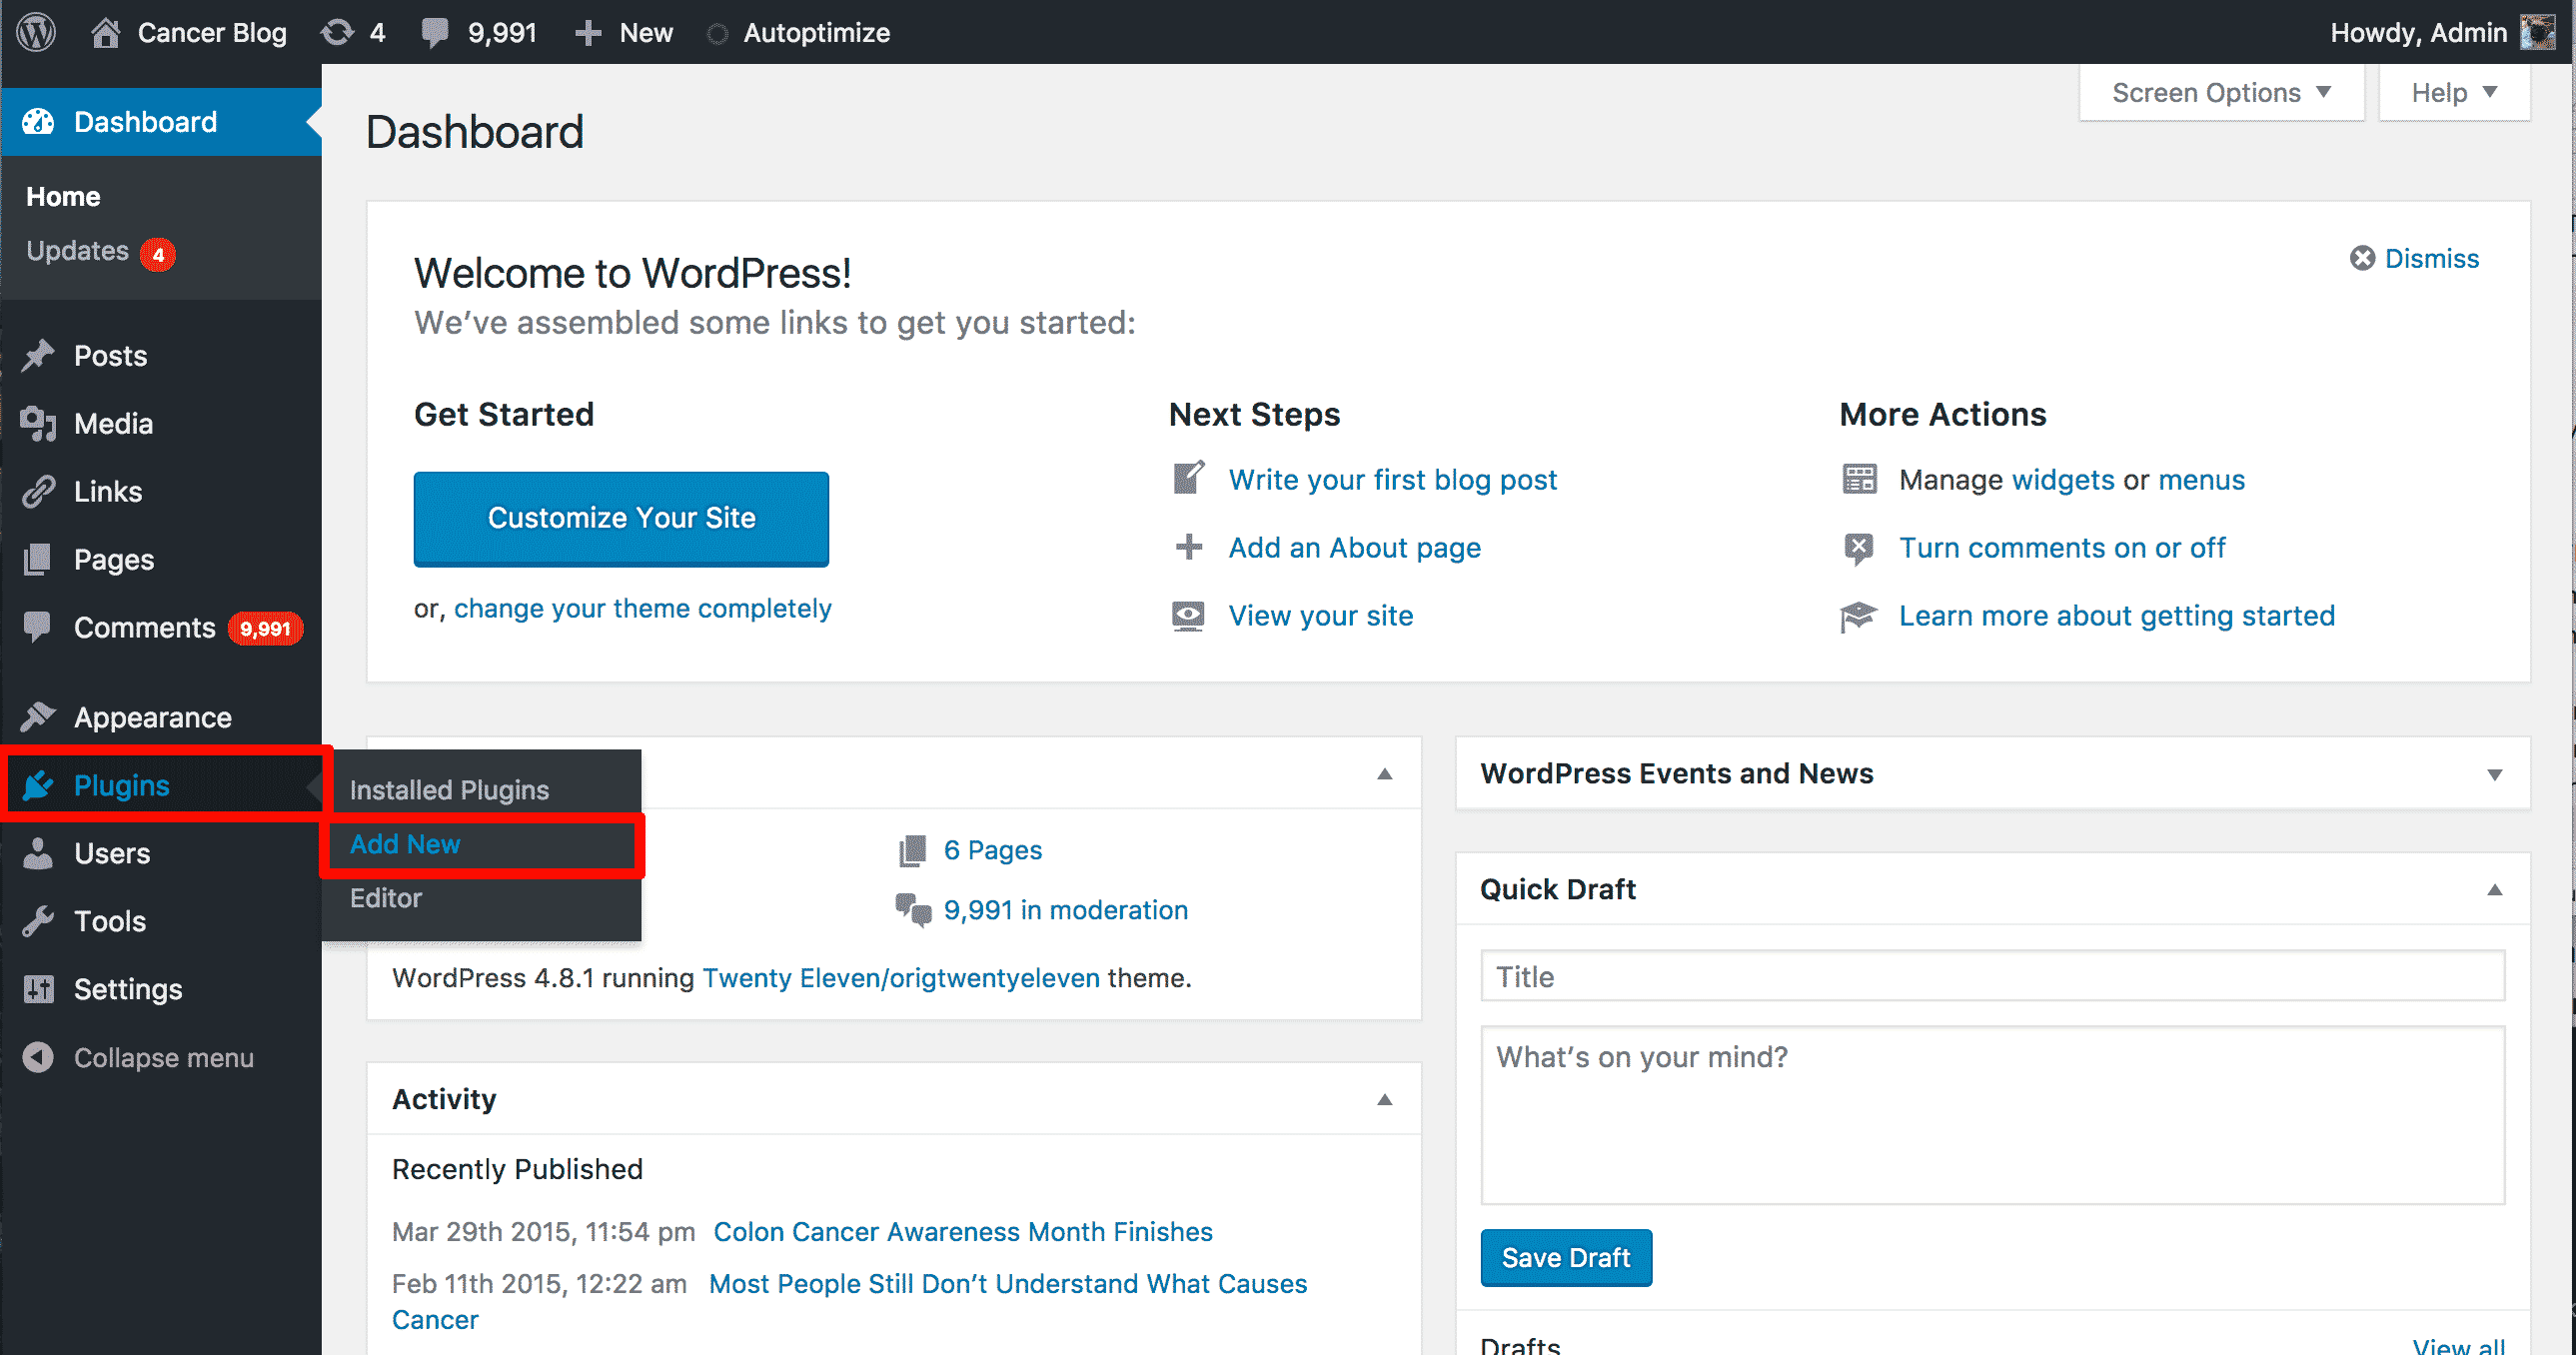 Adding new plugin WordPress